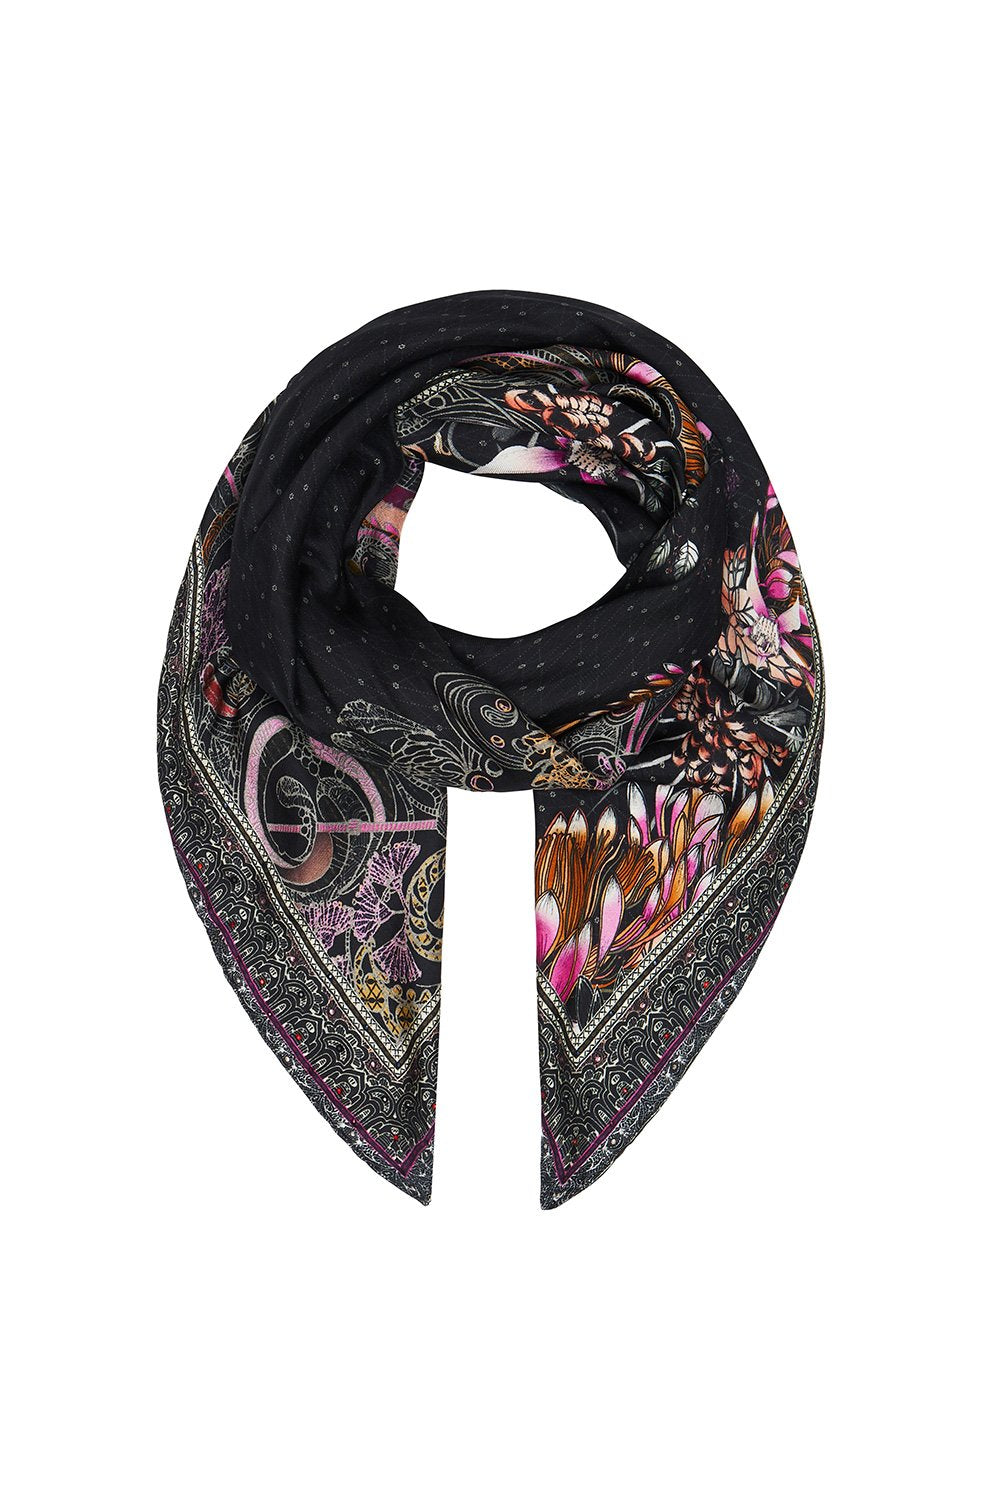 LARGE SQUARE SCARF RESTLESS NIGHTS